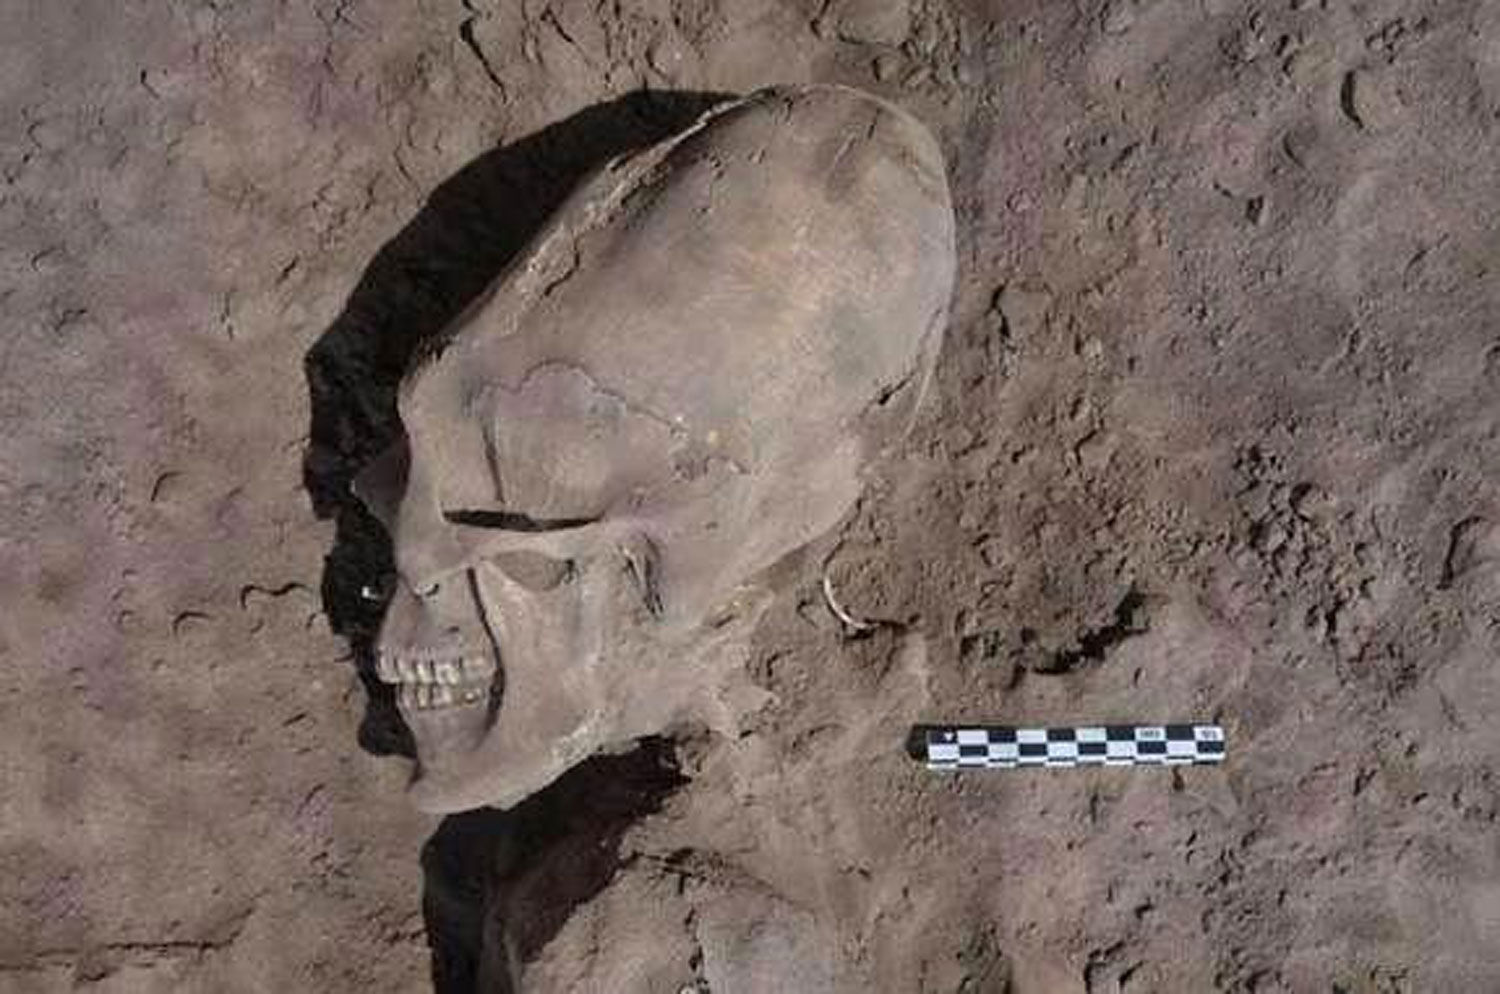 Alien skulls found at sonora mexico ancient burial site